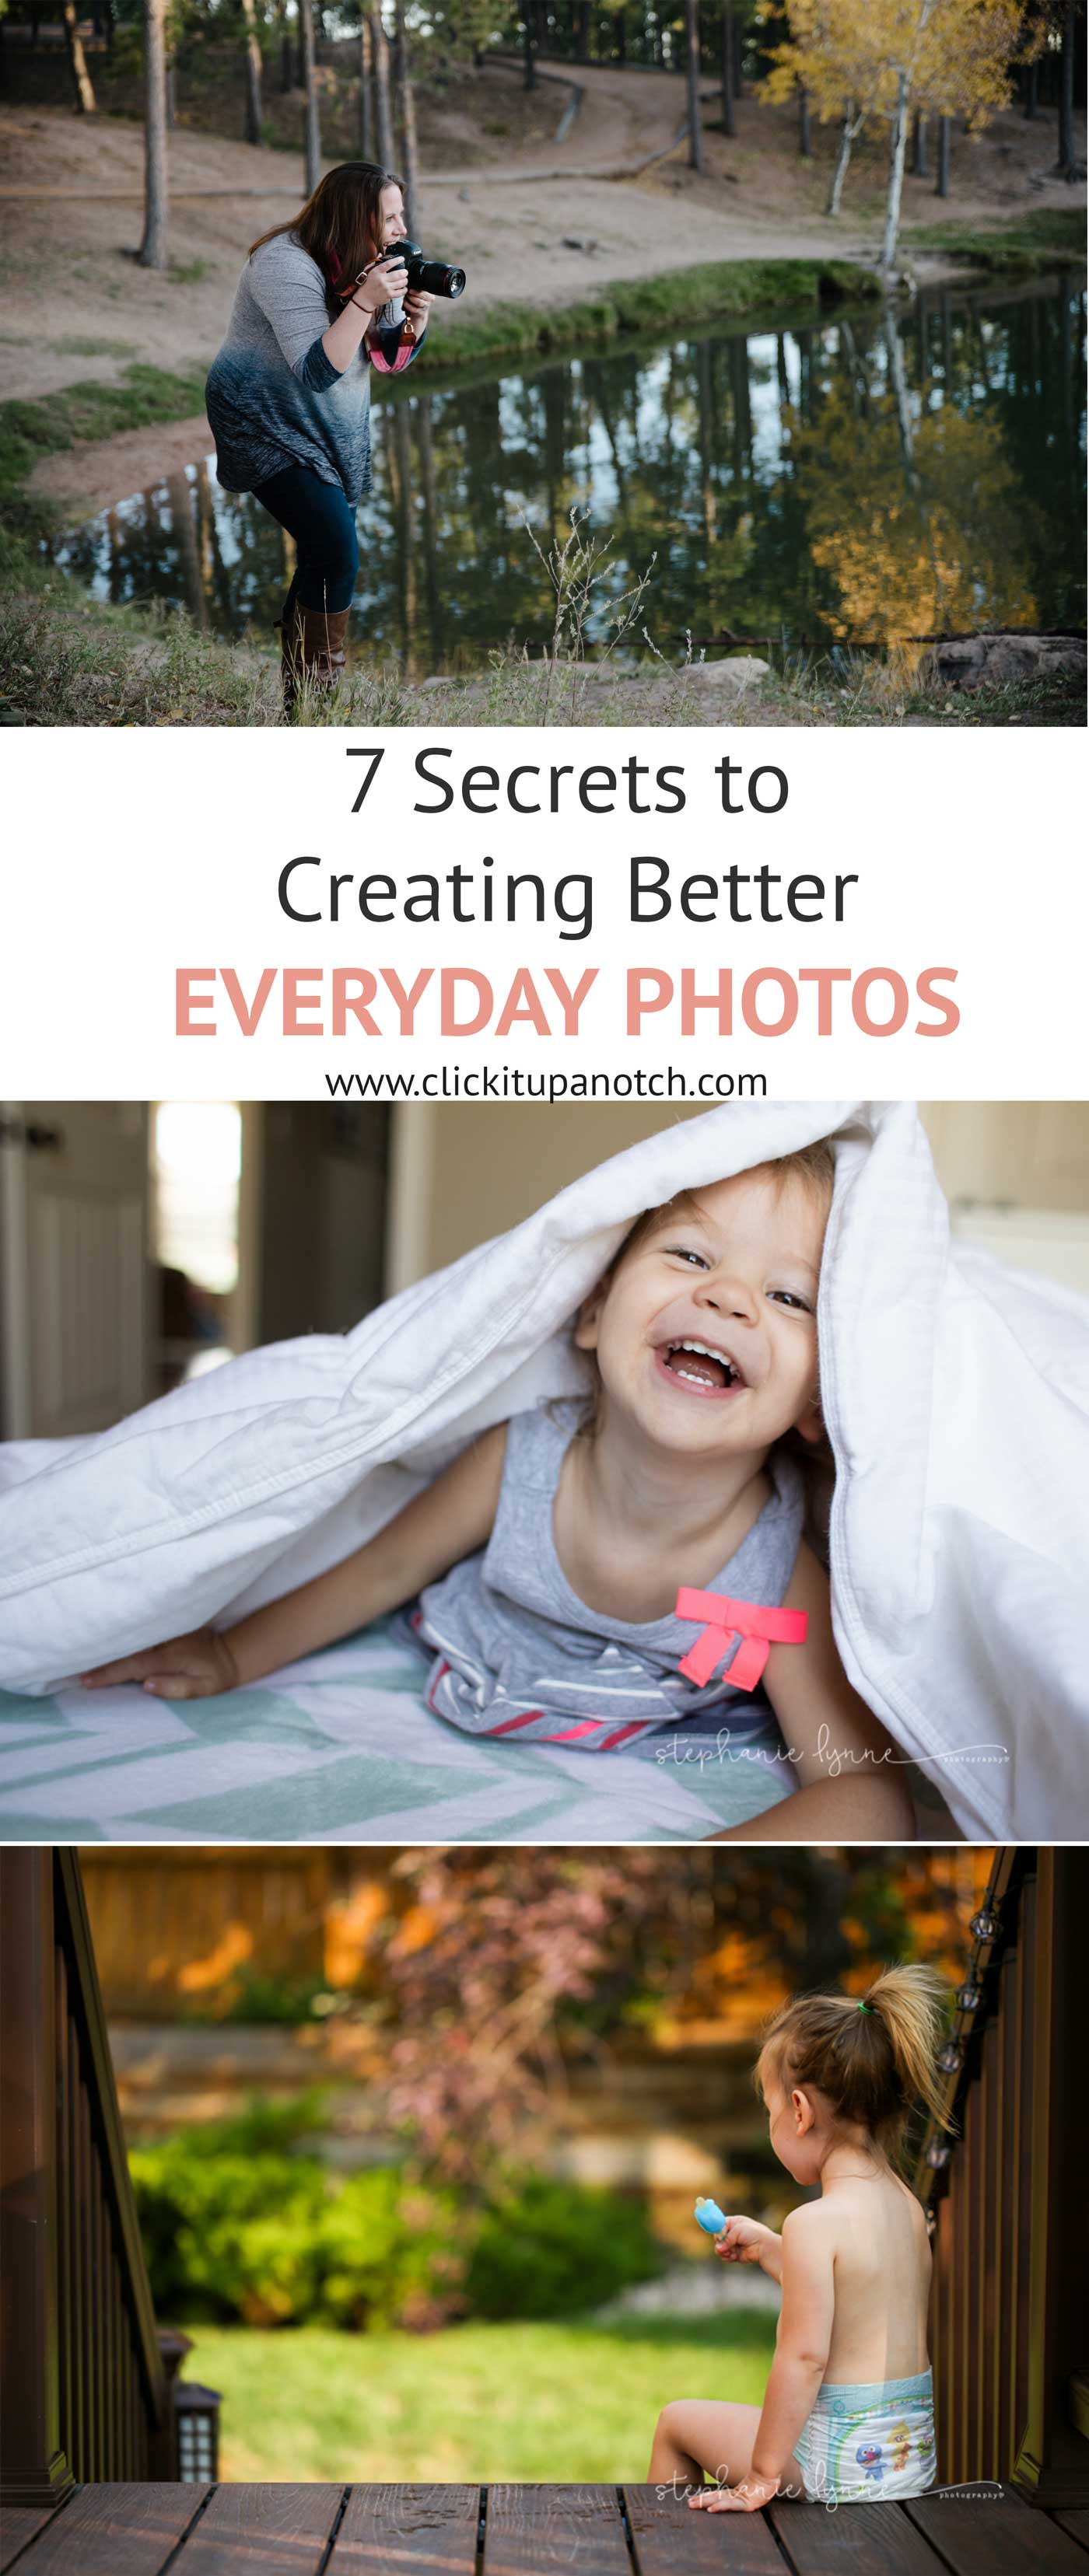 Great photography tips to better everyday photos! Awesome tips to take pictures of the everyday moments.